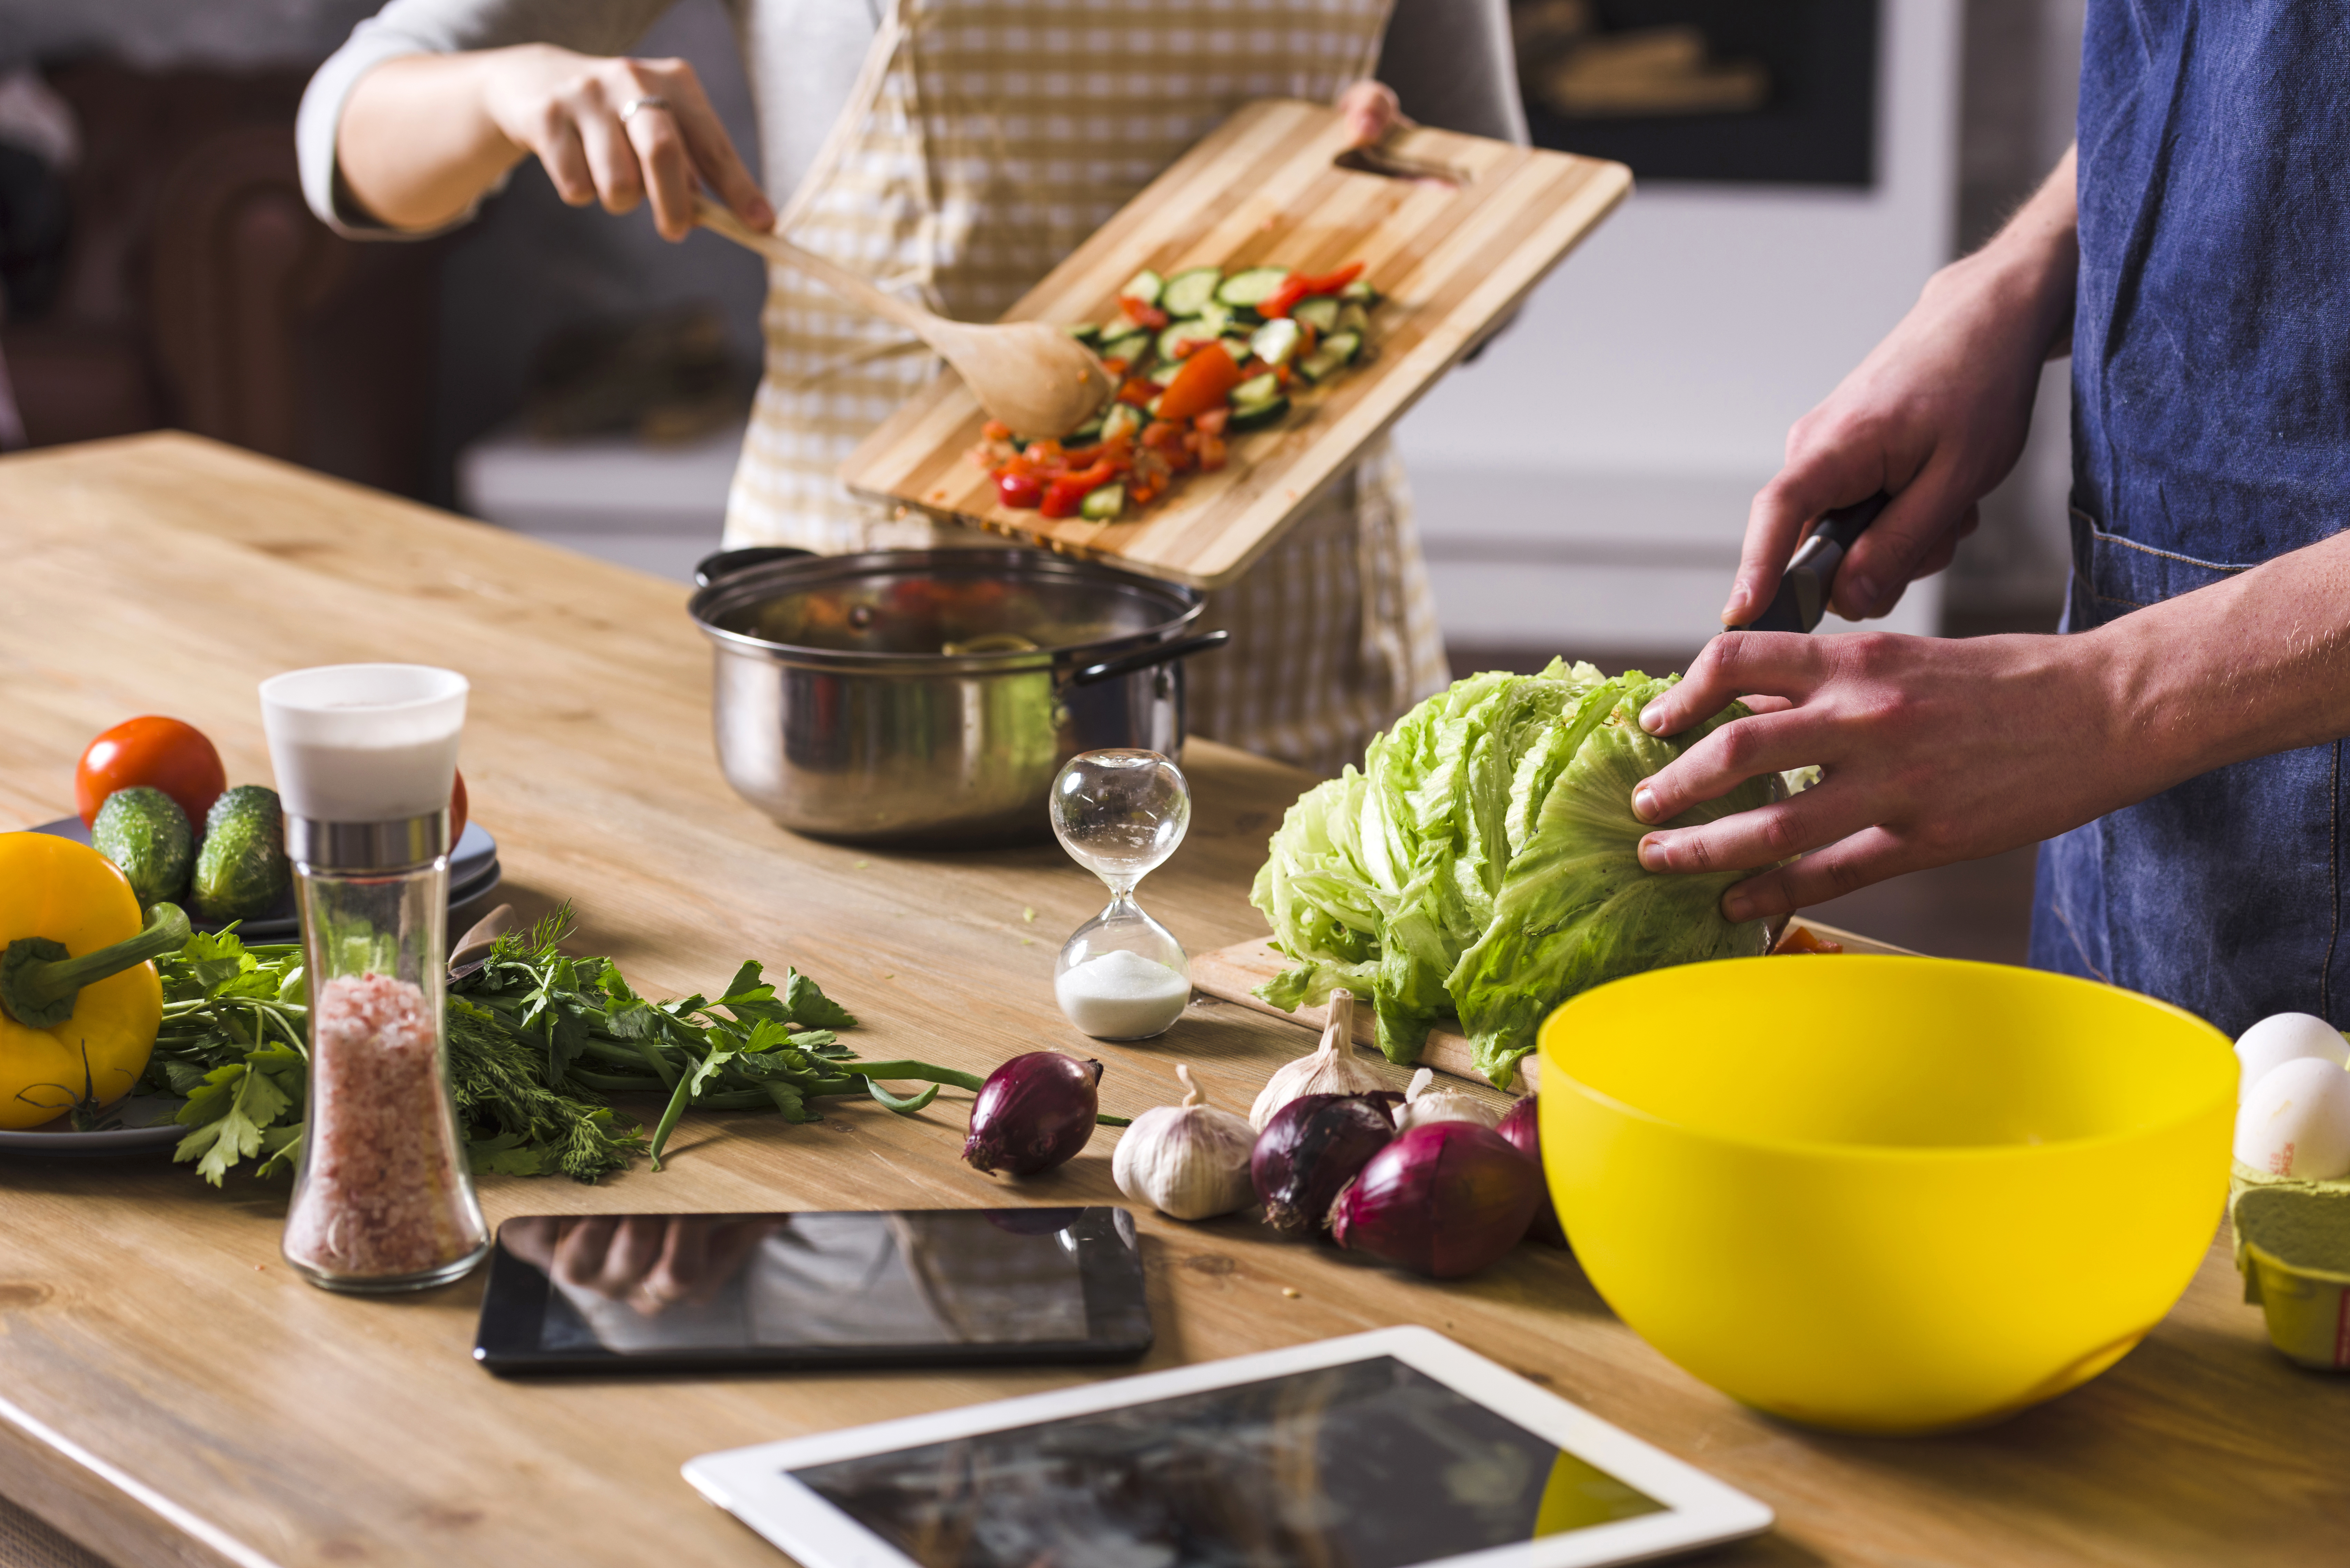 How healthy is your cooking?